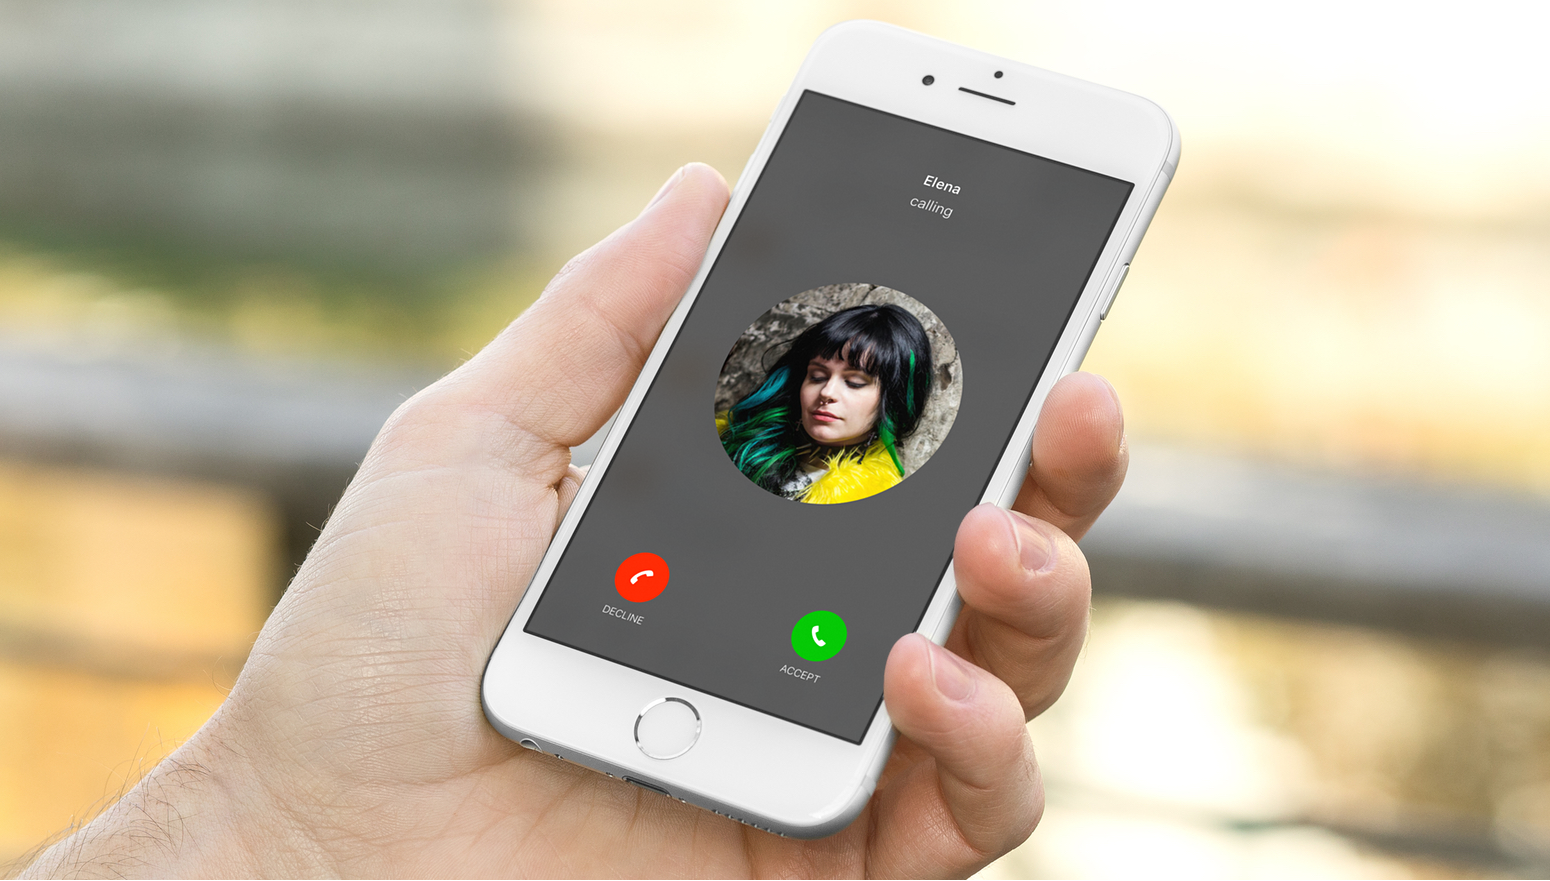 Incoming call on an iPhone screen